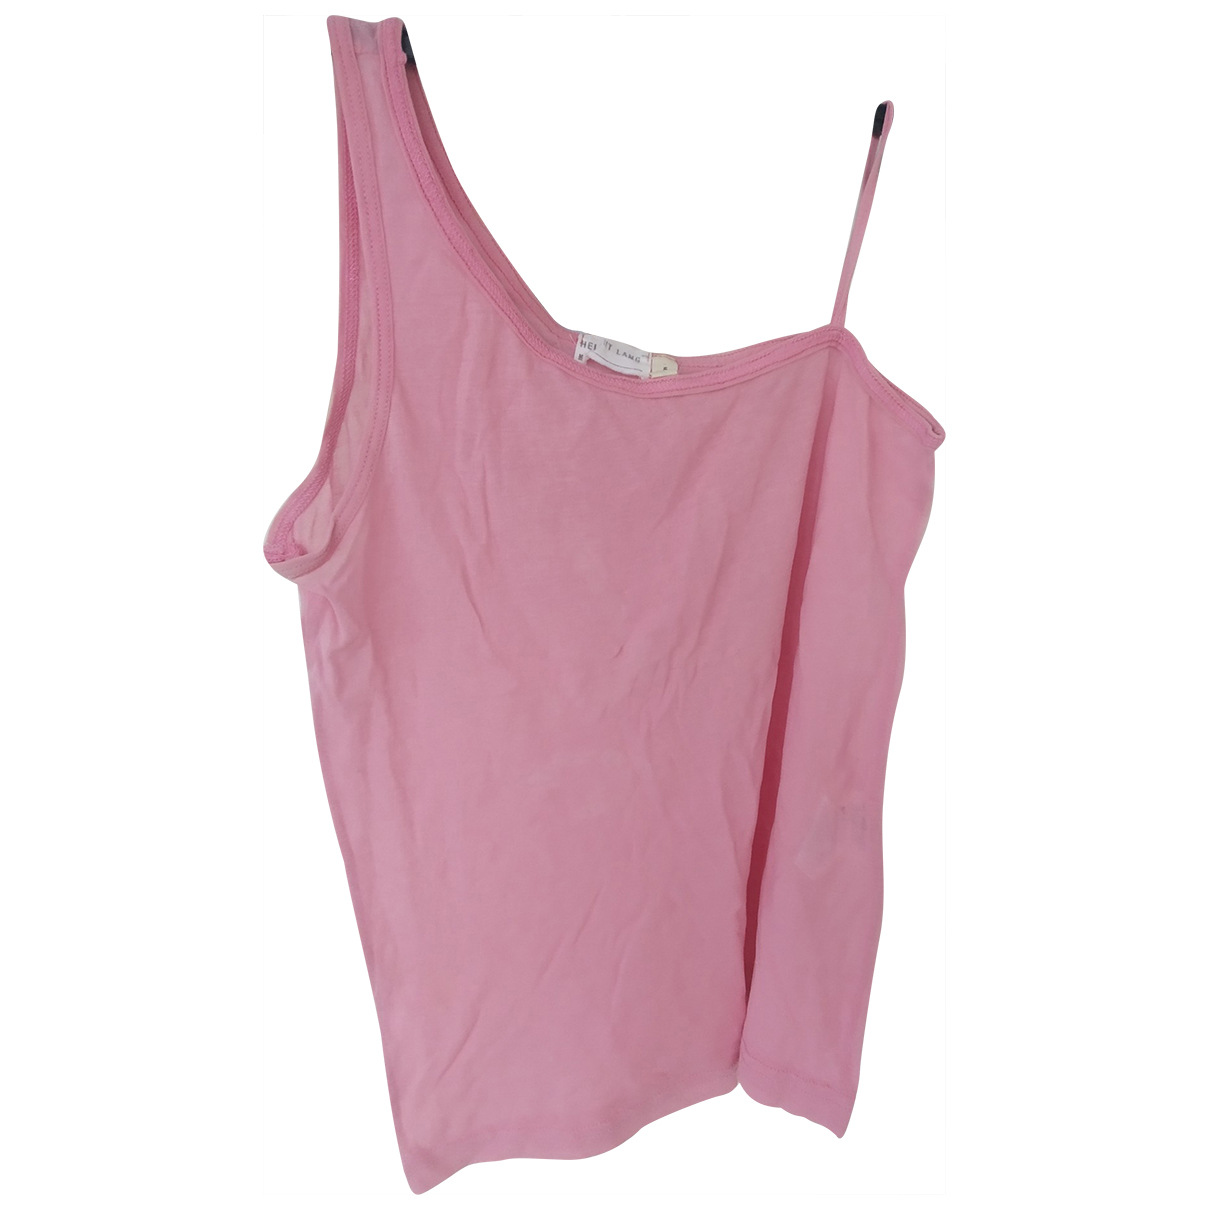 Helmut Lang N Pink Cotton  top for Women M International